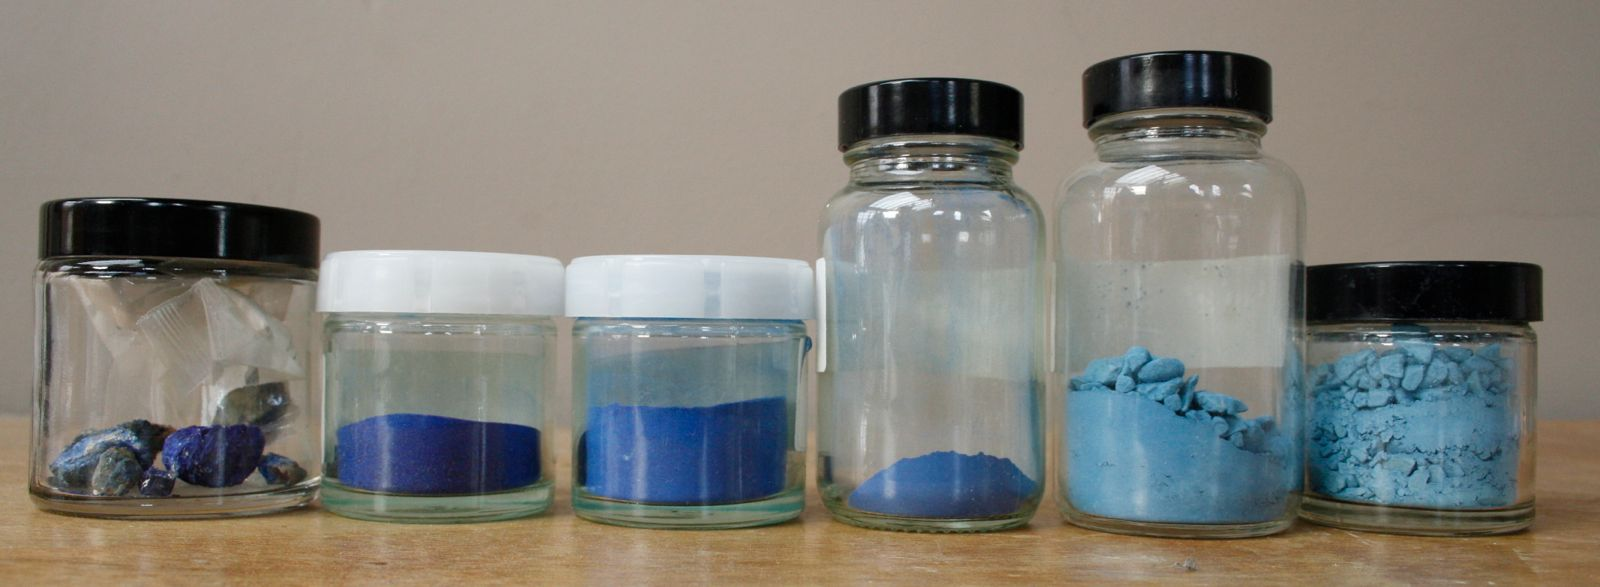 Azurite mineral (far left) and grades 1 to 5 of the pigment (going from left to right). Grade 1 azurite is of the highest quality and has the largest particle sizes.